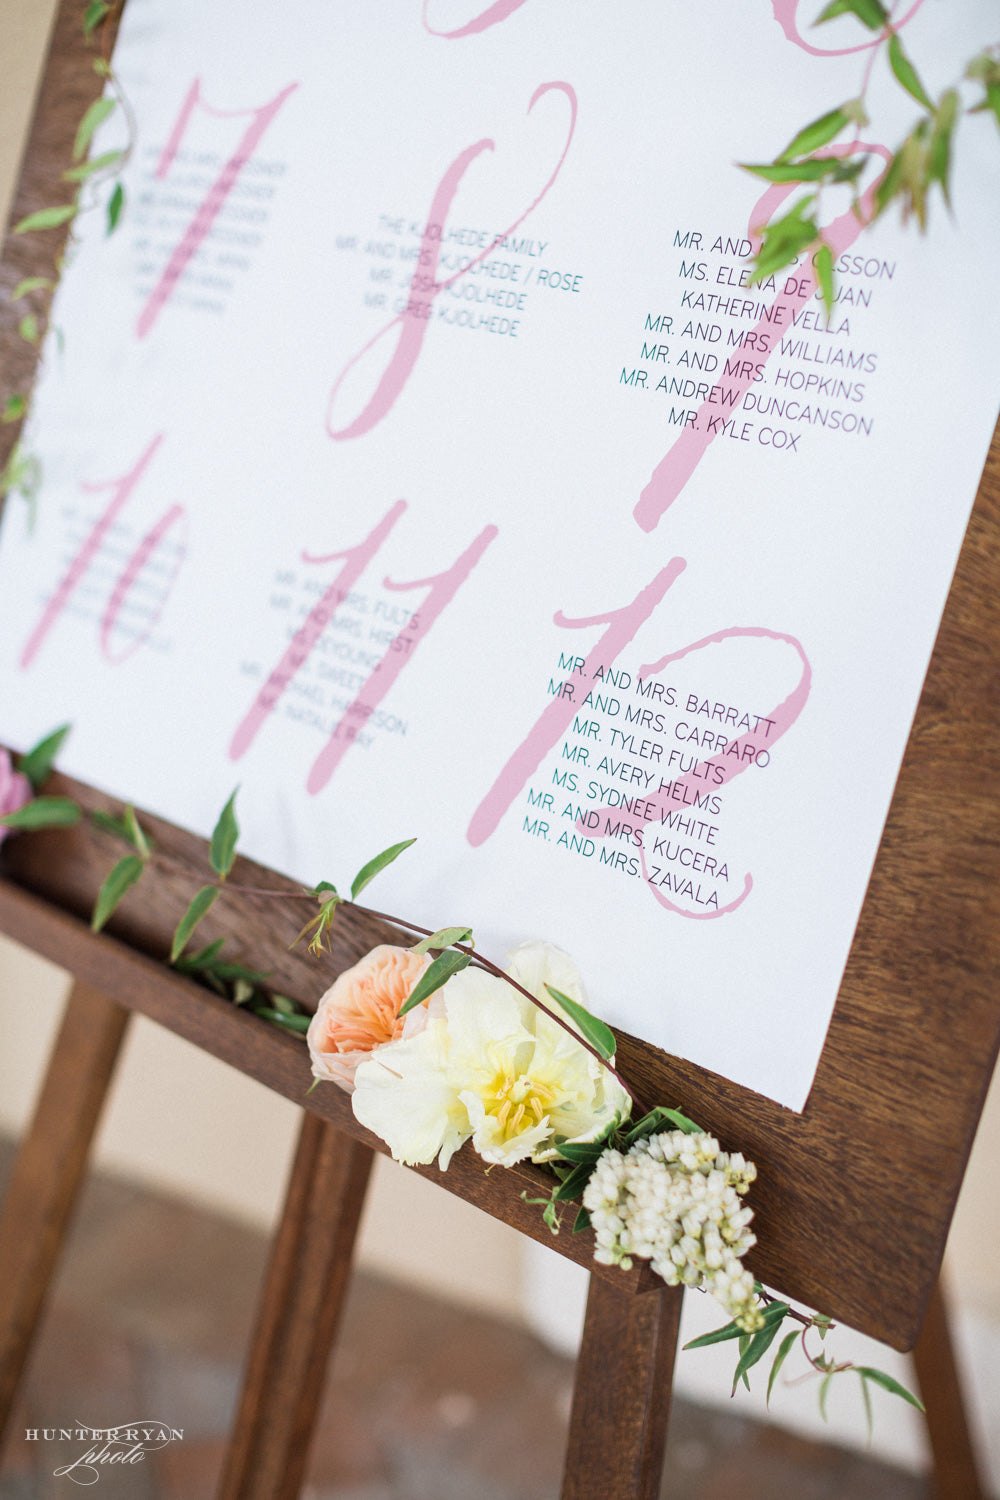 Wedding Seating Chart, Escort Cards, Wedding Place Cards